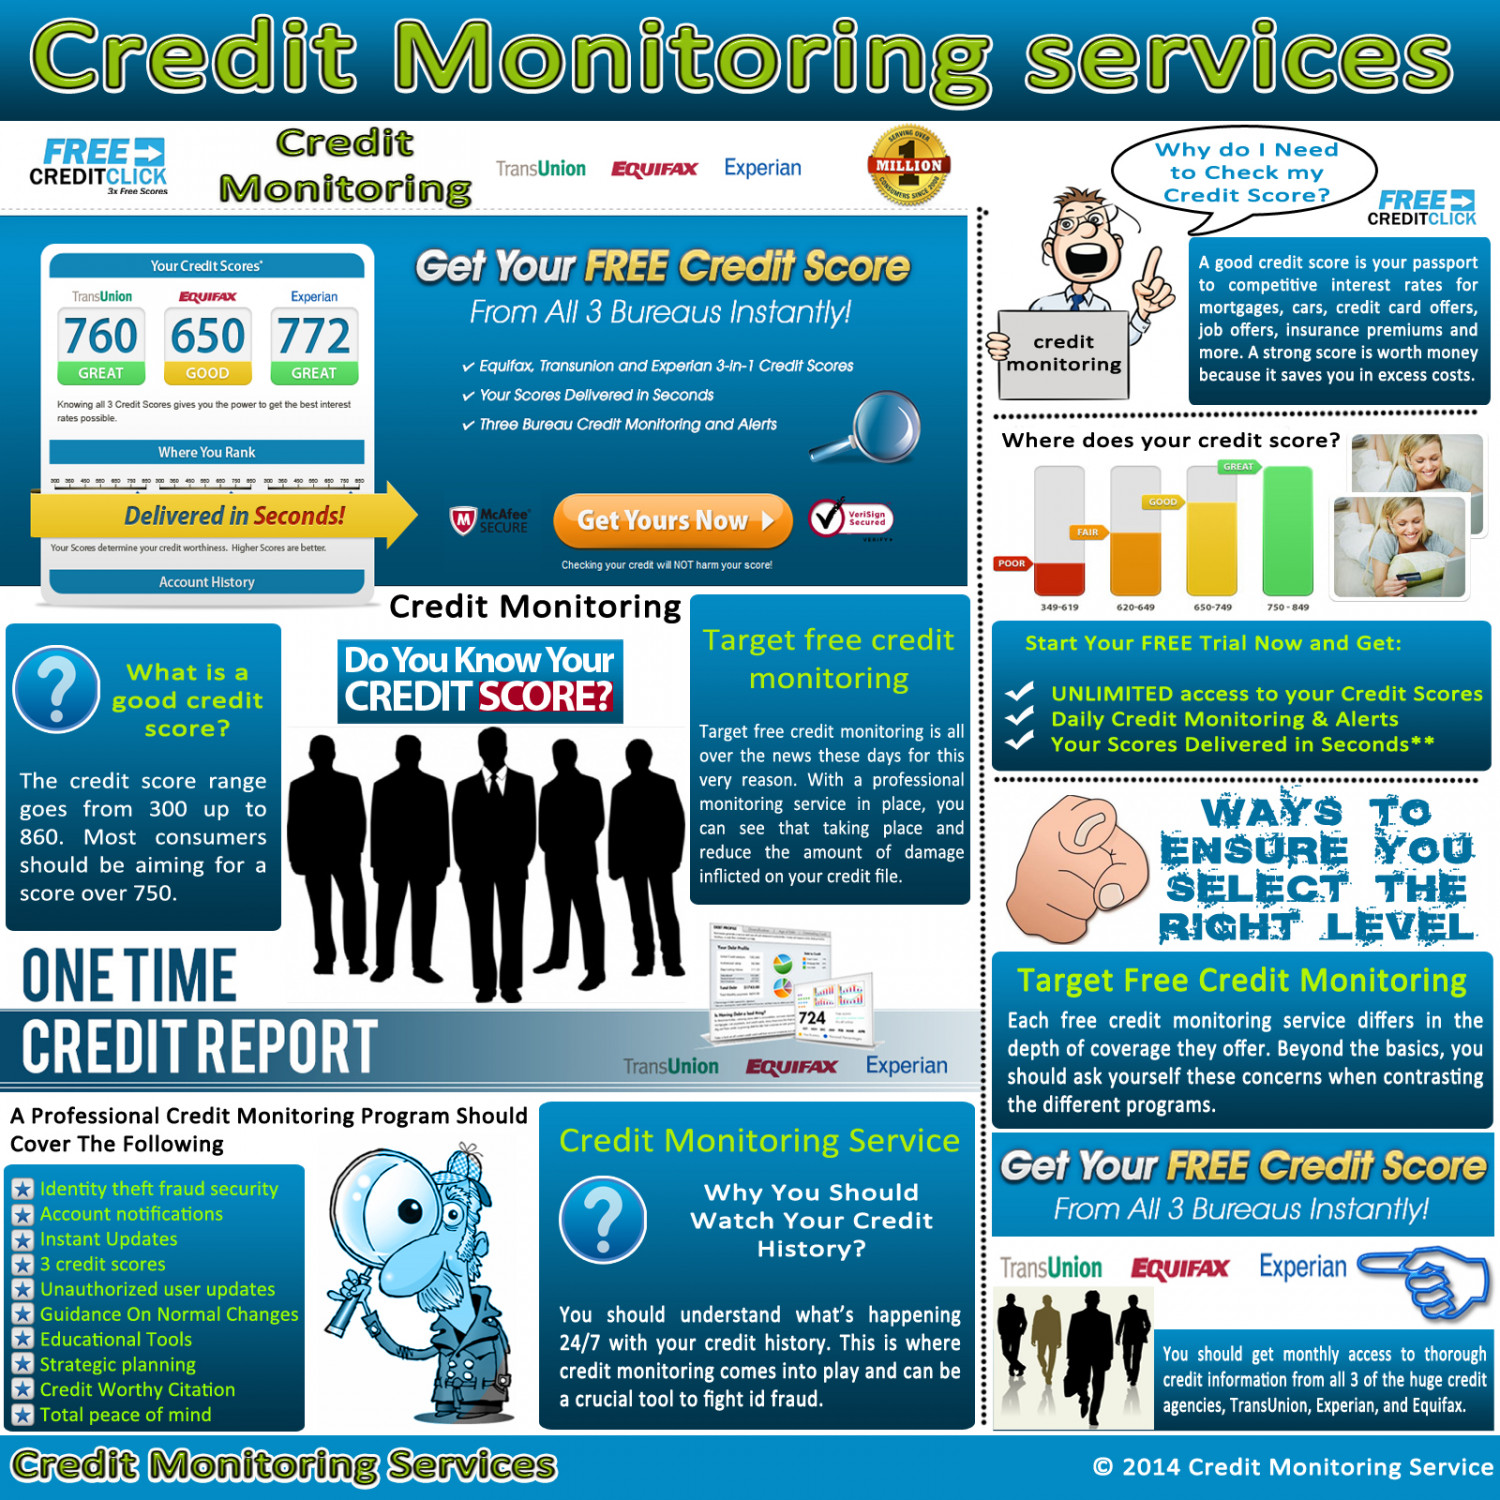 Credit Monitoring Services Infographic